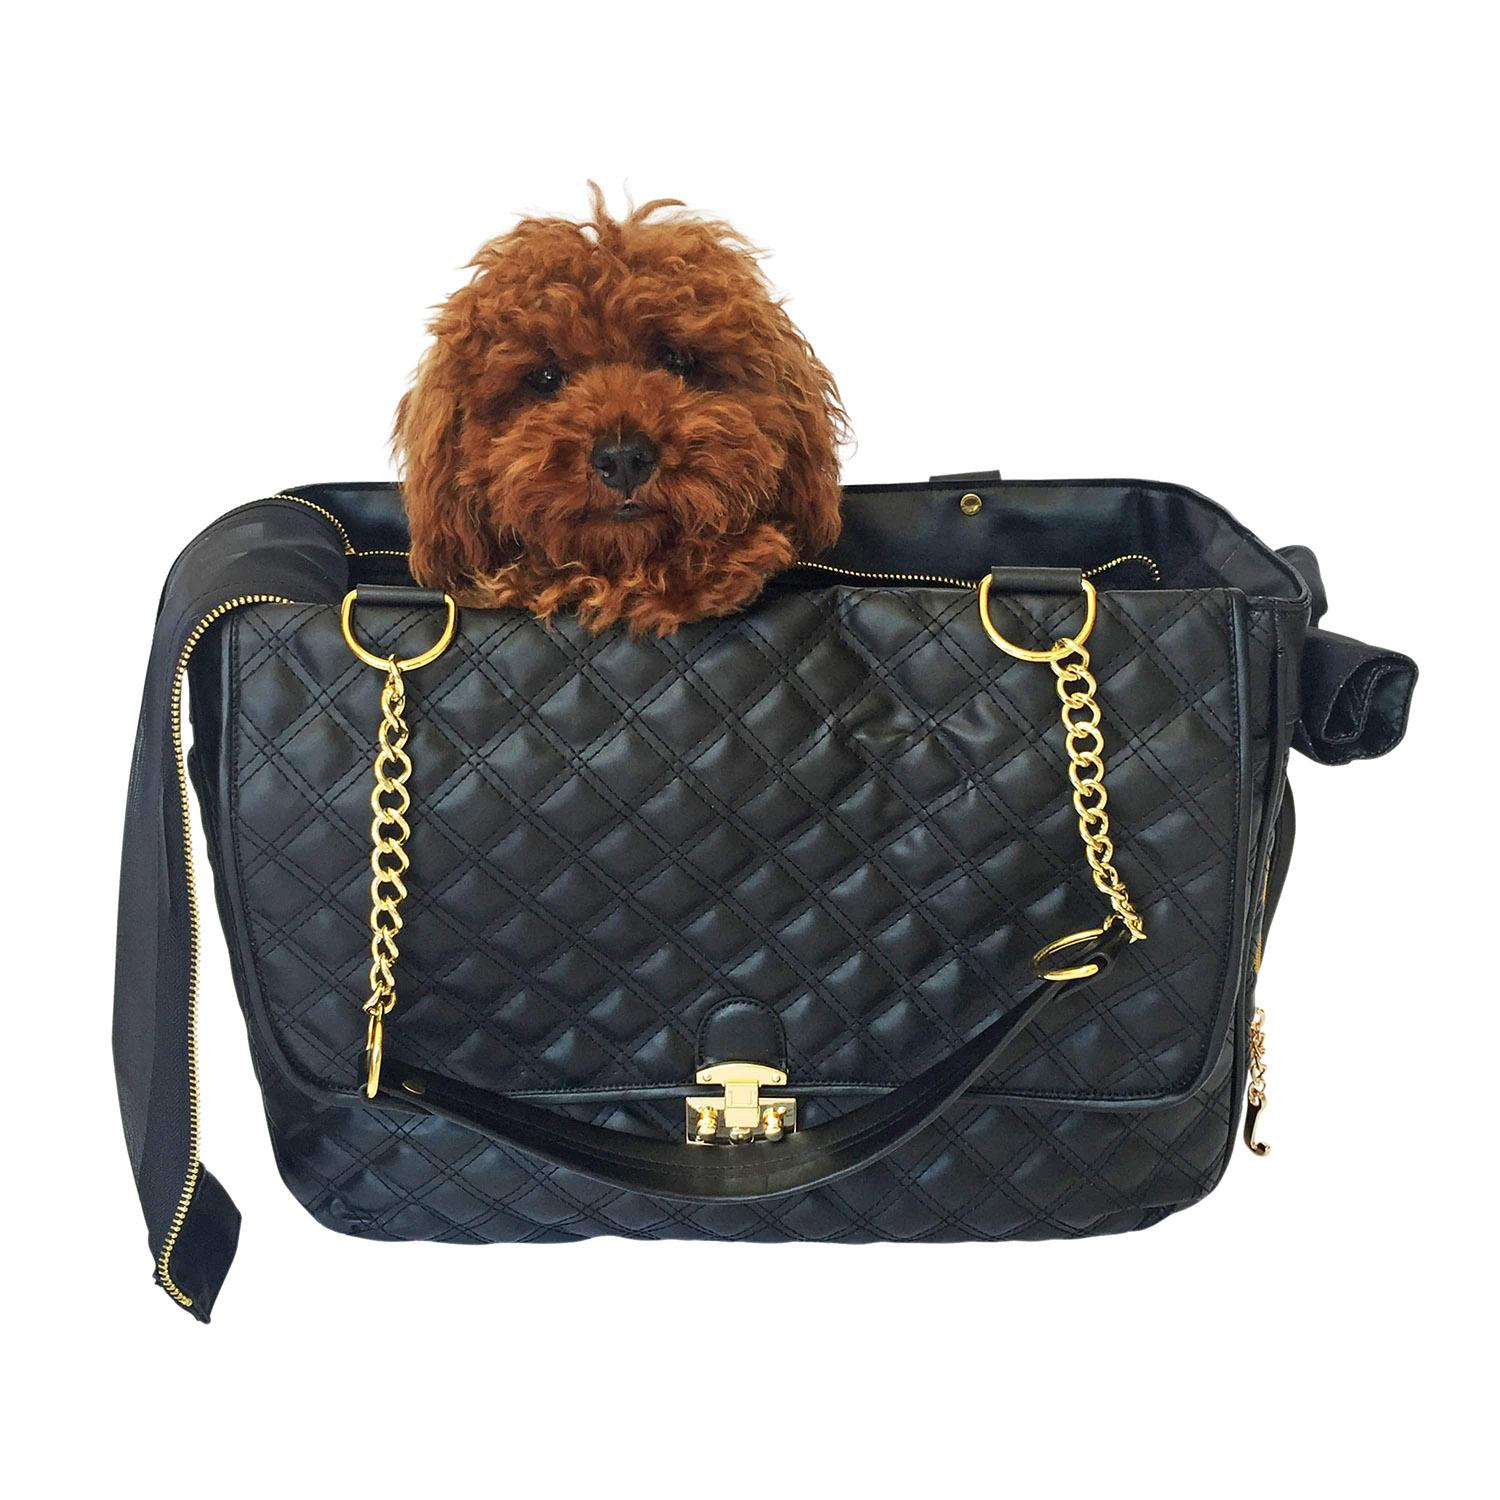 Rodeo Signature Quilted Dog Travel Carrier - Black